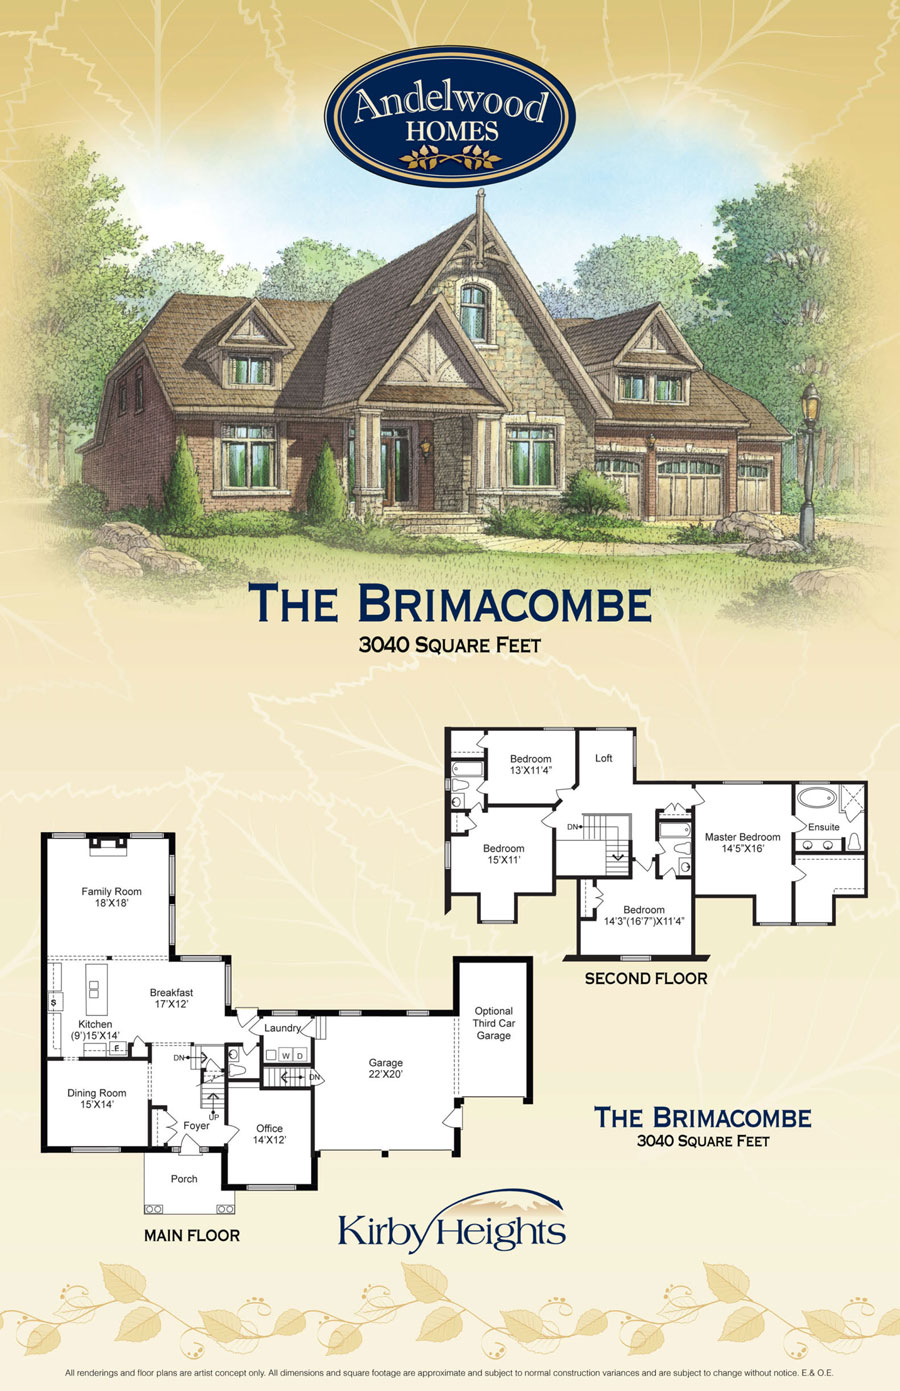 The Brimacombe